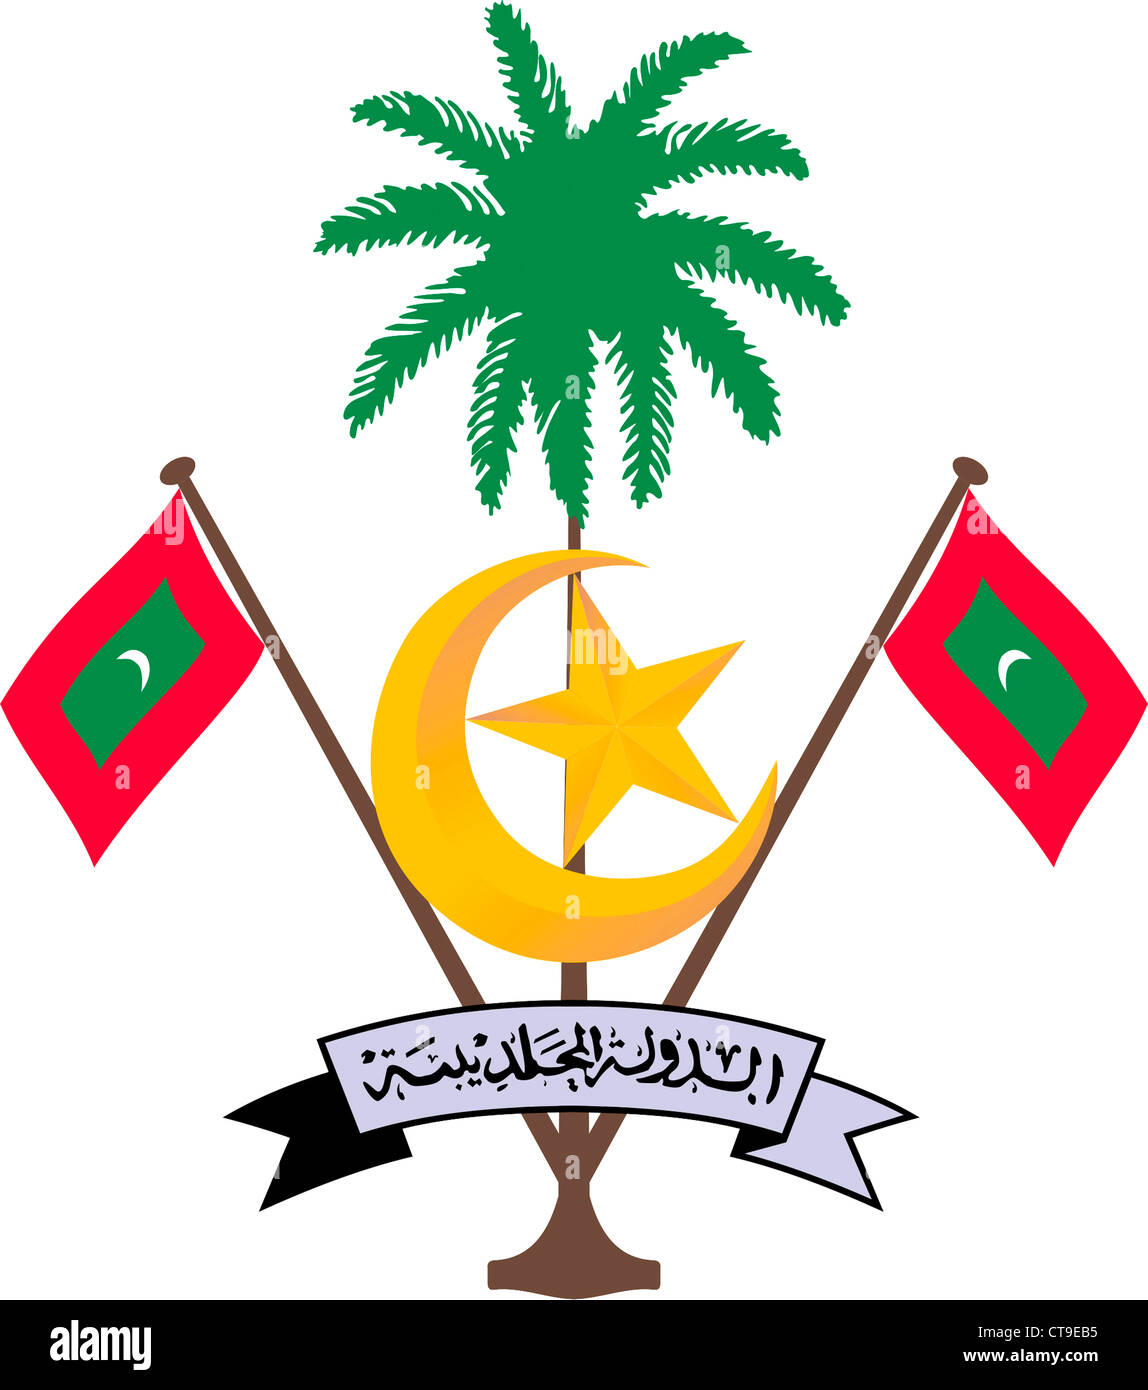 National coat of arms of the Republic of Maledives. - Stock Image